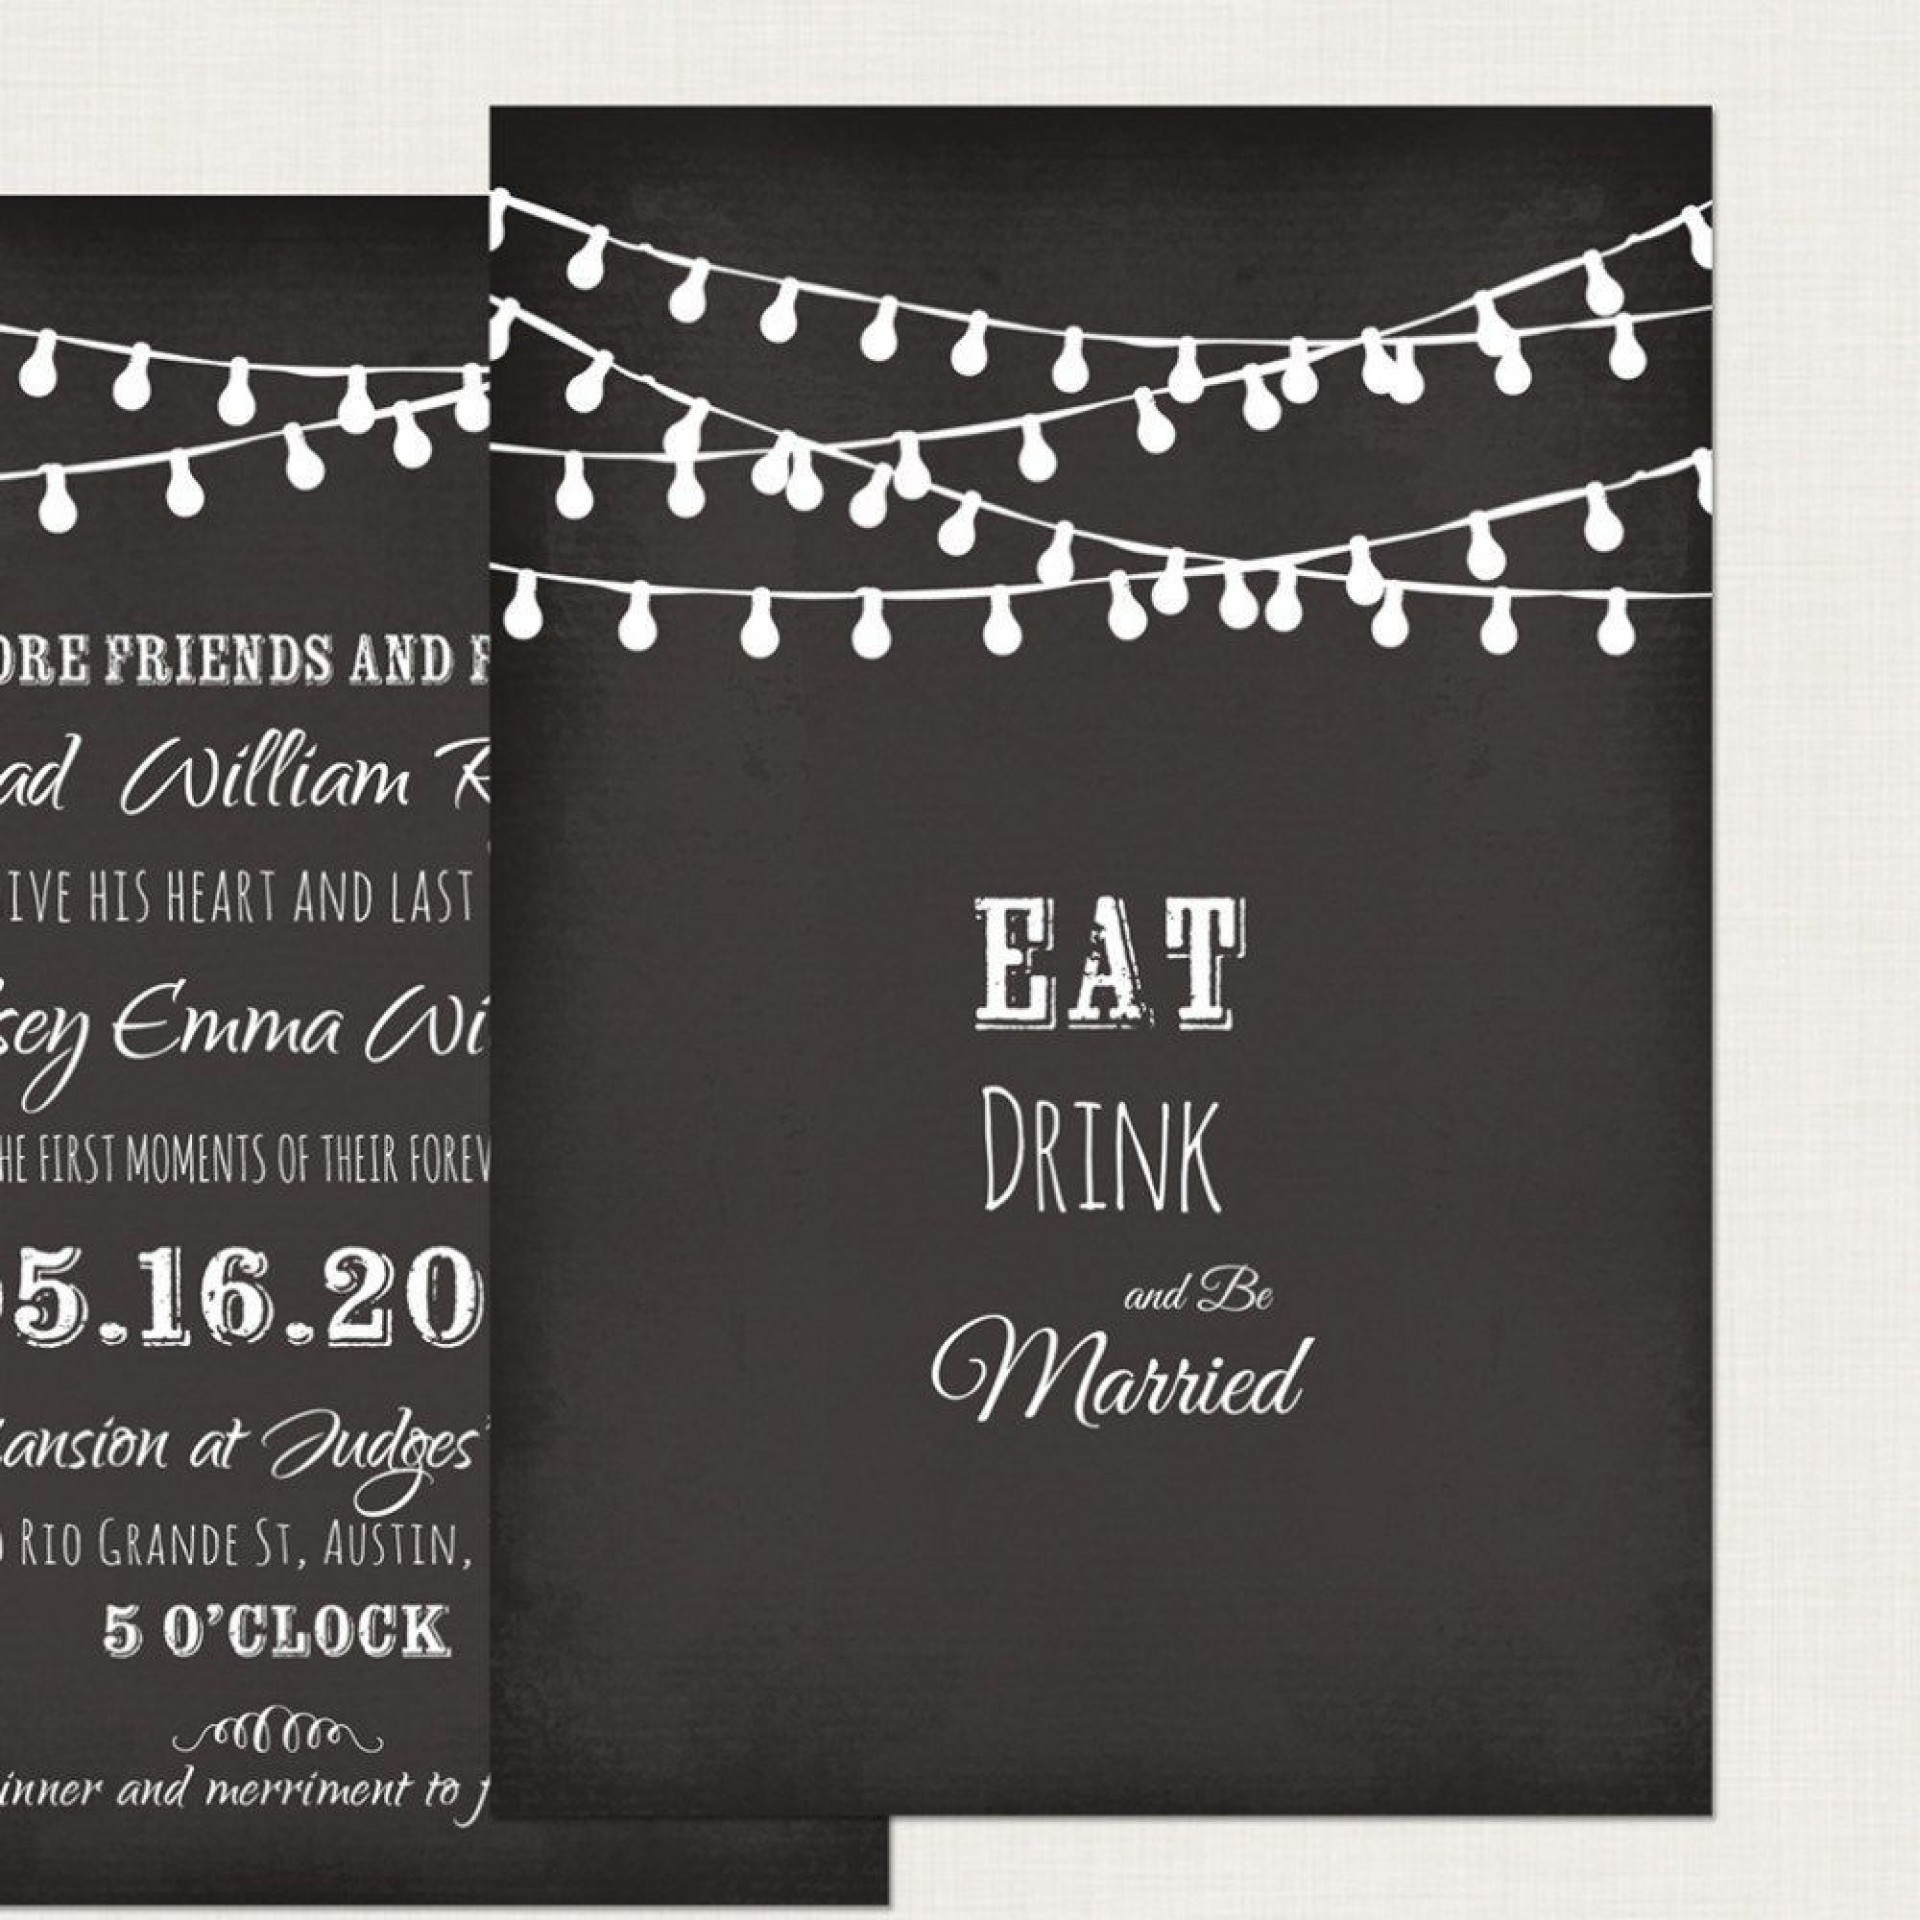 002 Impressive Chalkboard Invitation Template Free High Definition  Download Birthday1920